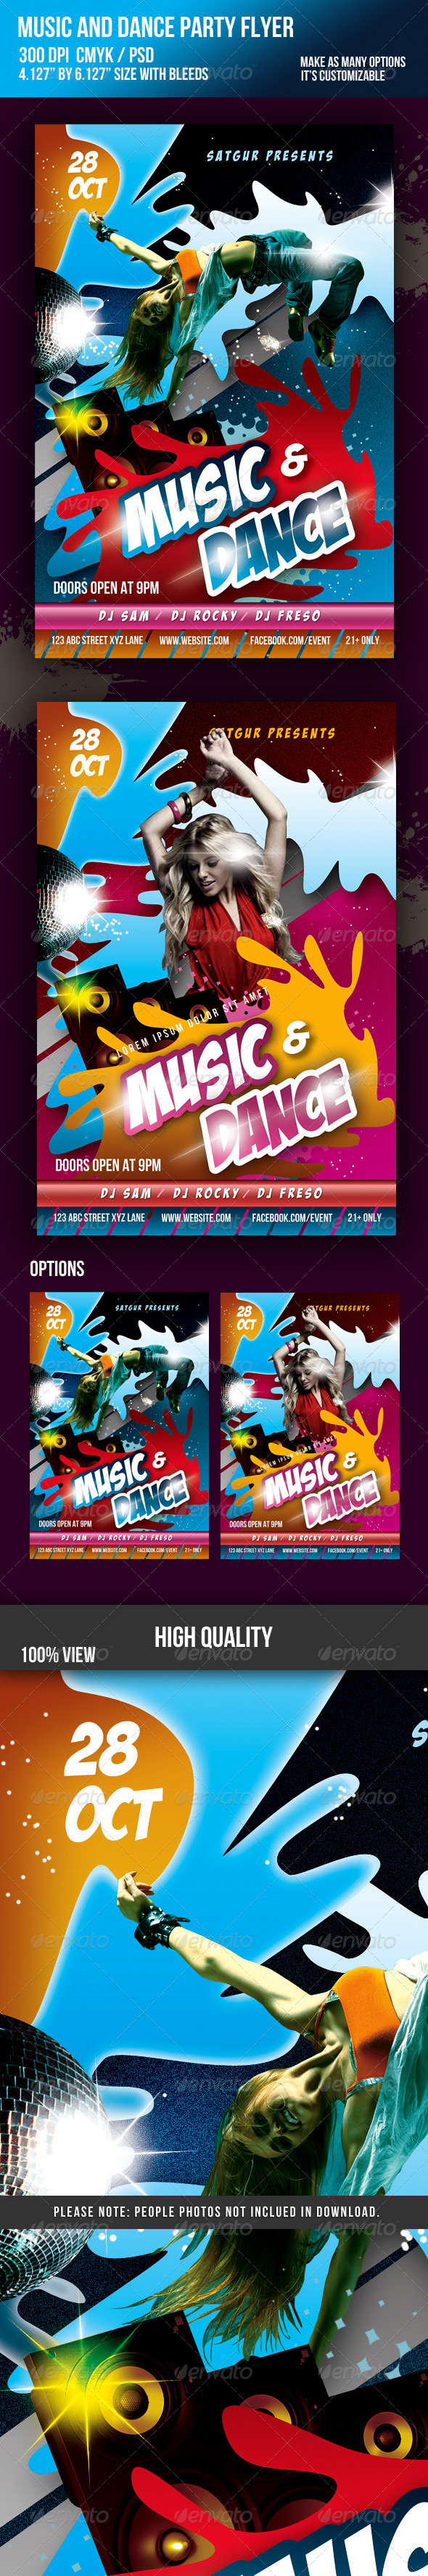 Music Dance Party Night Flyer - Clubs & Parties Events